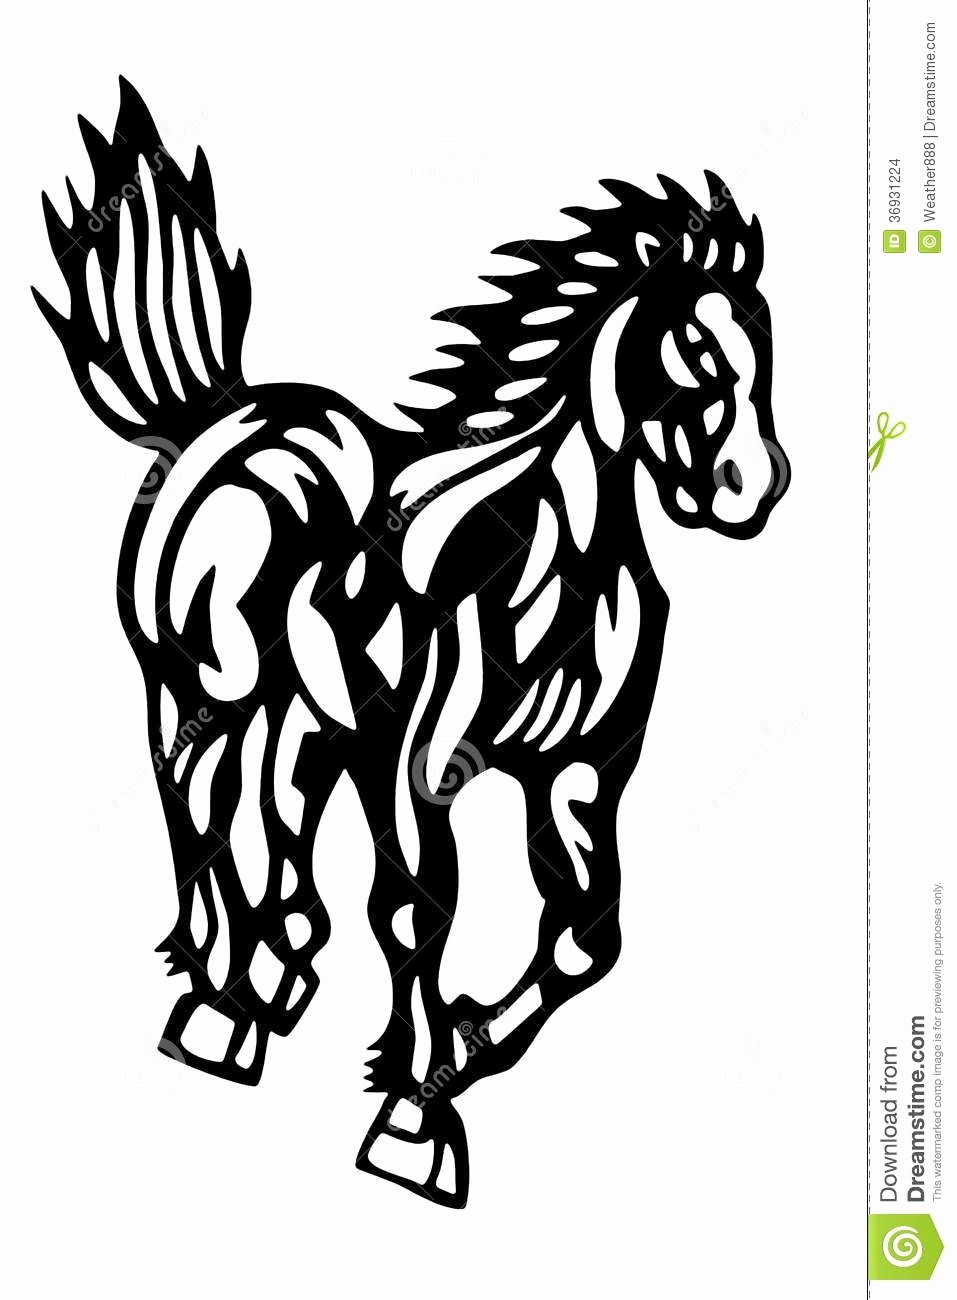 Chinese Paper Cut Horse Stock Image